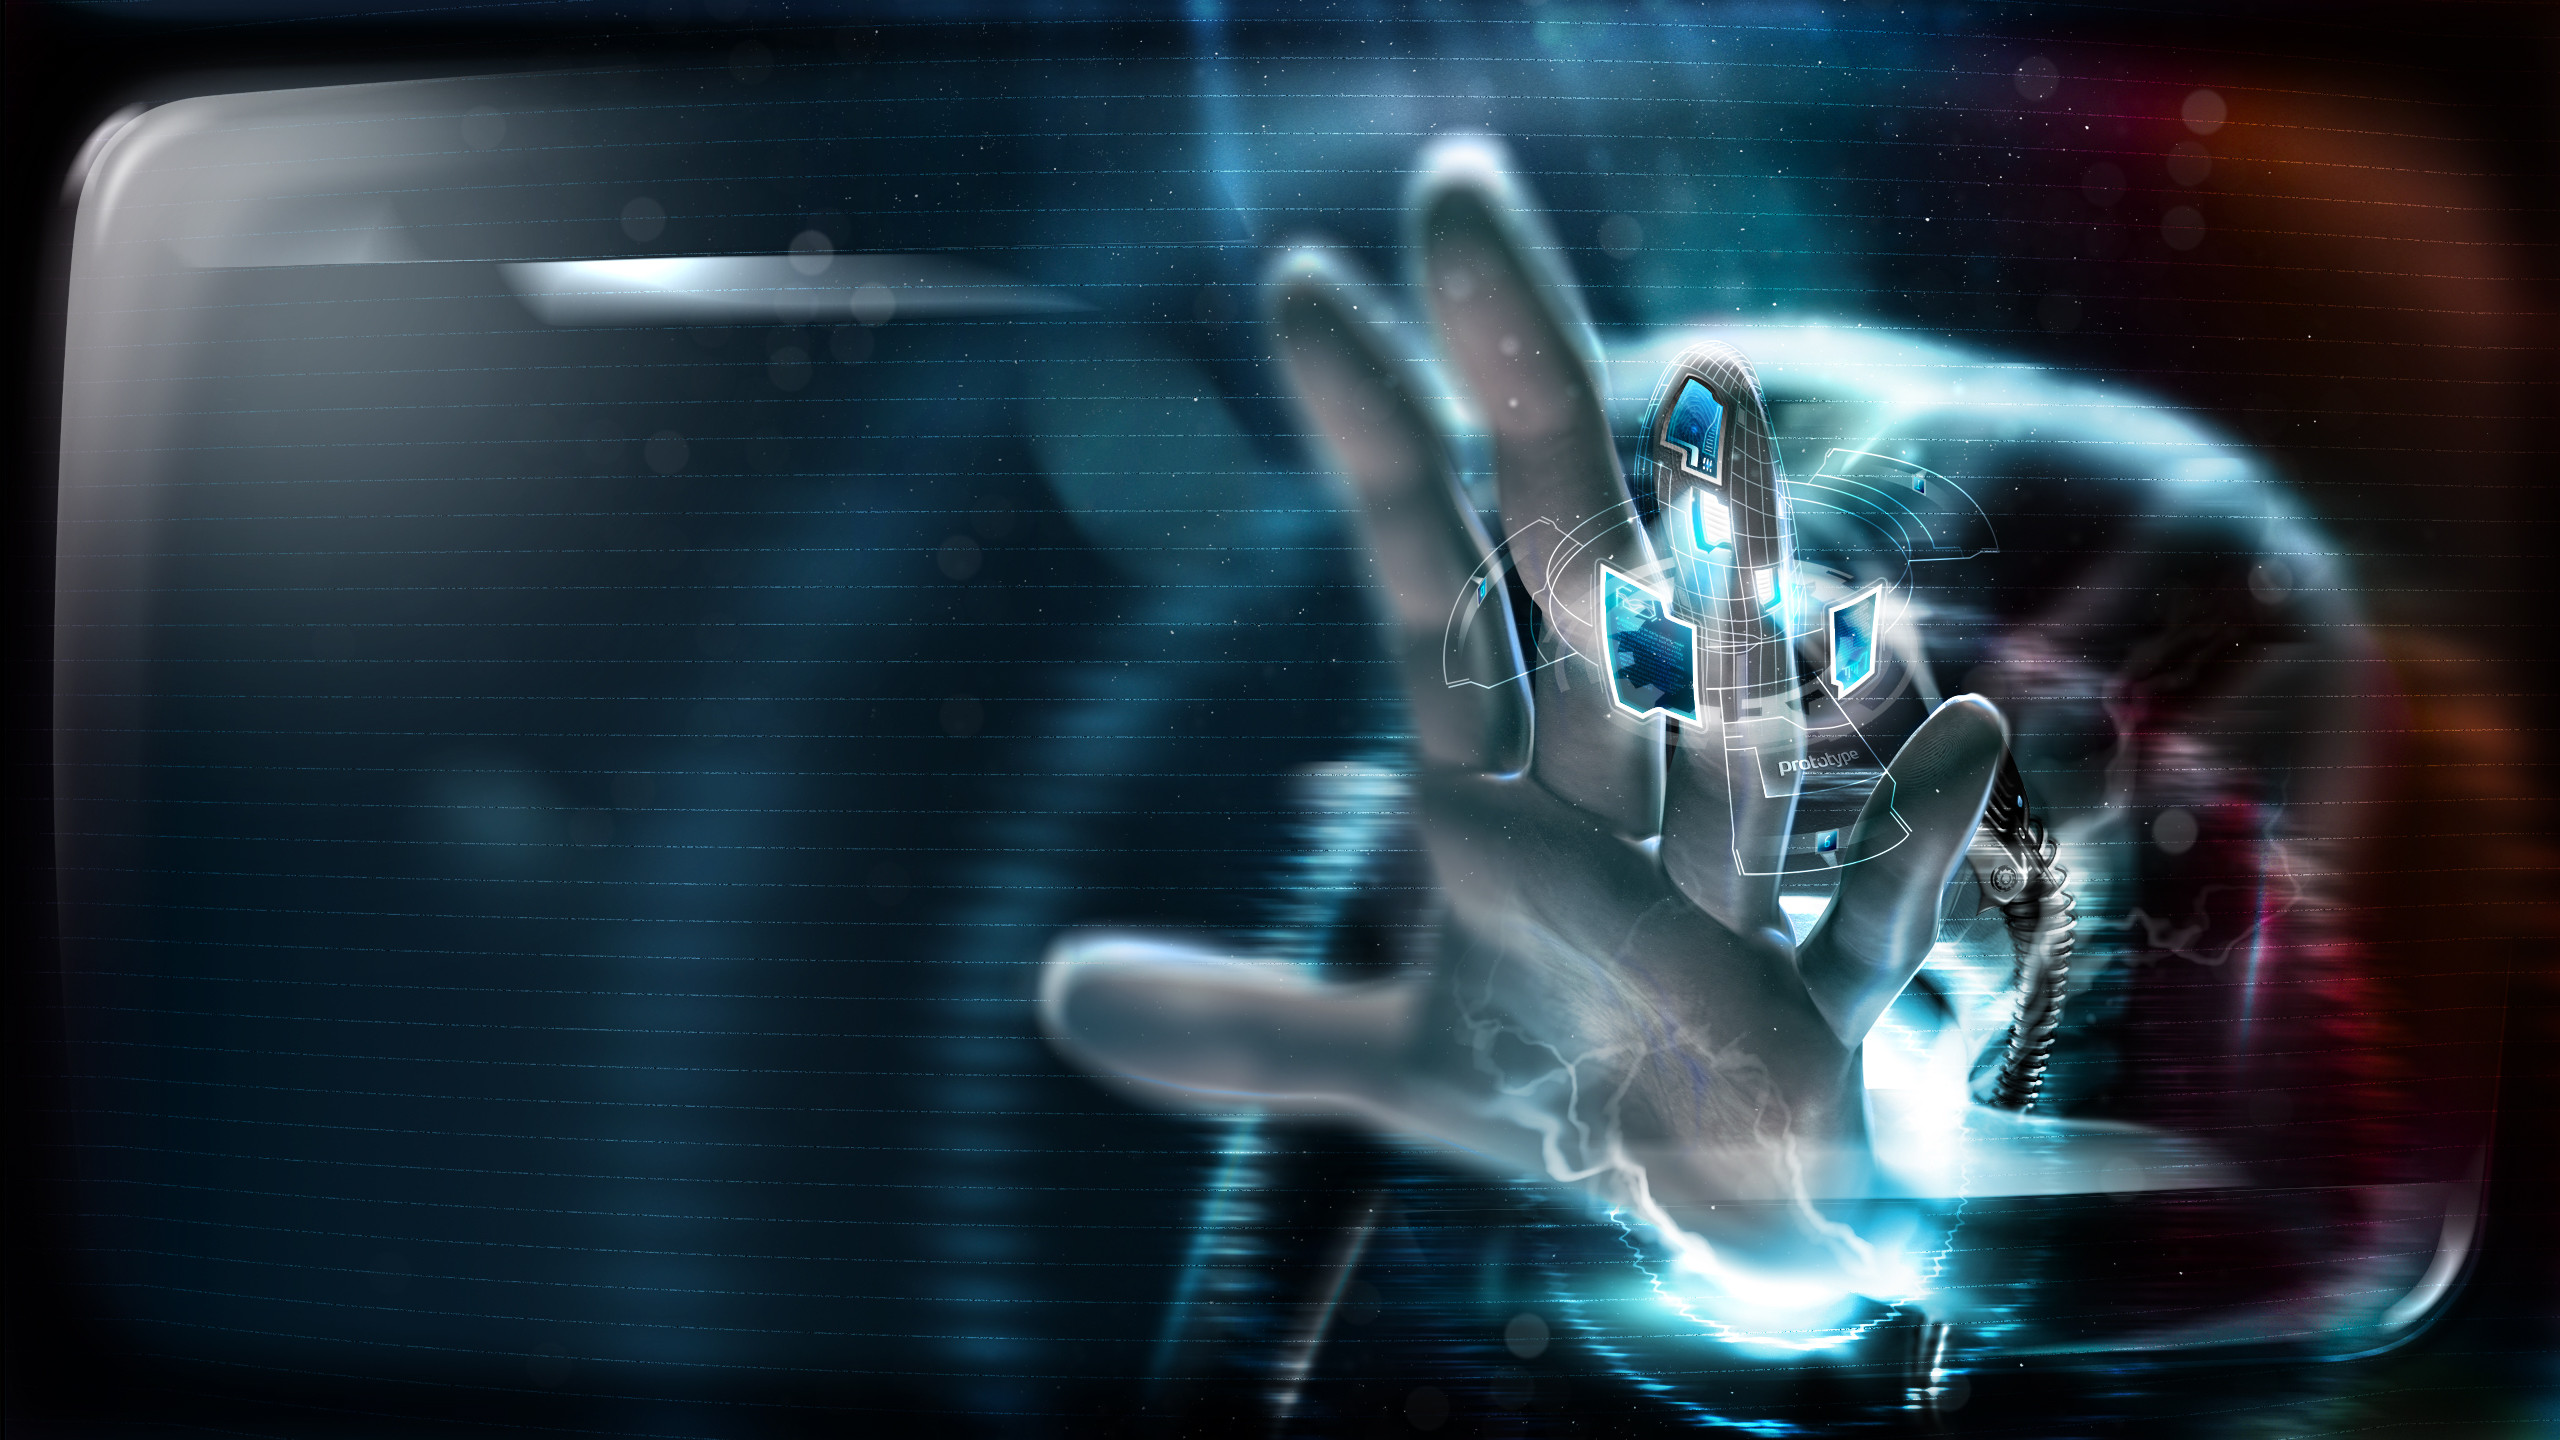 2560x1440 Hi Tech Wallpapers For Desktop and Laptops | HD Wallpapers .